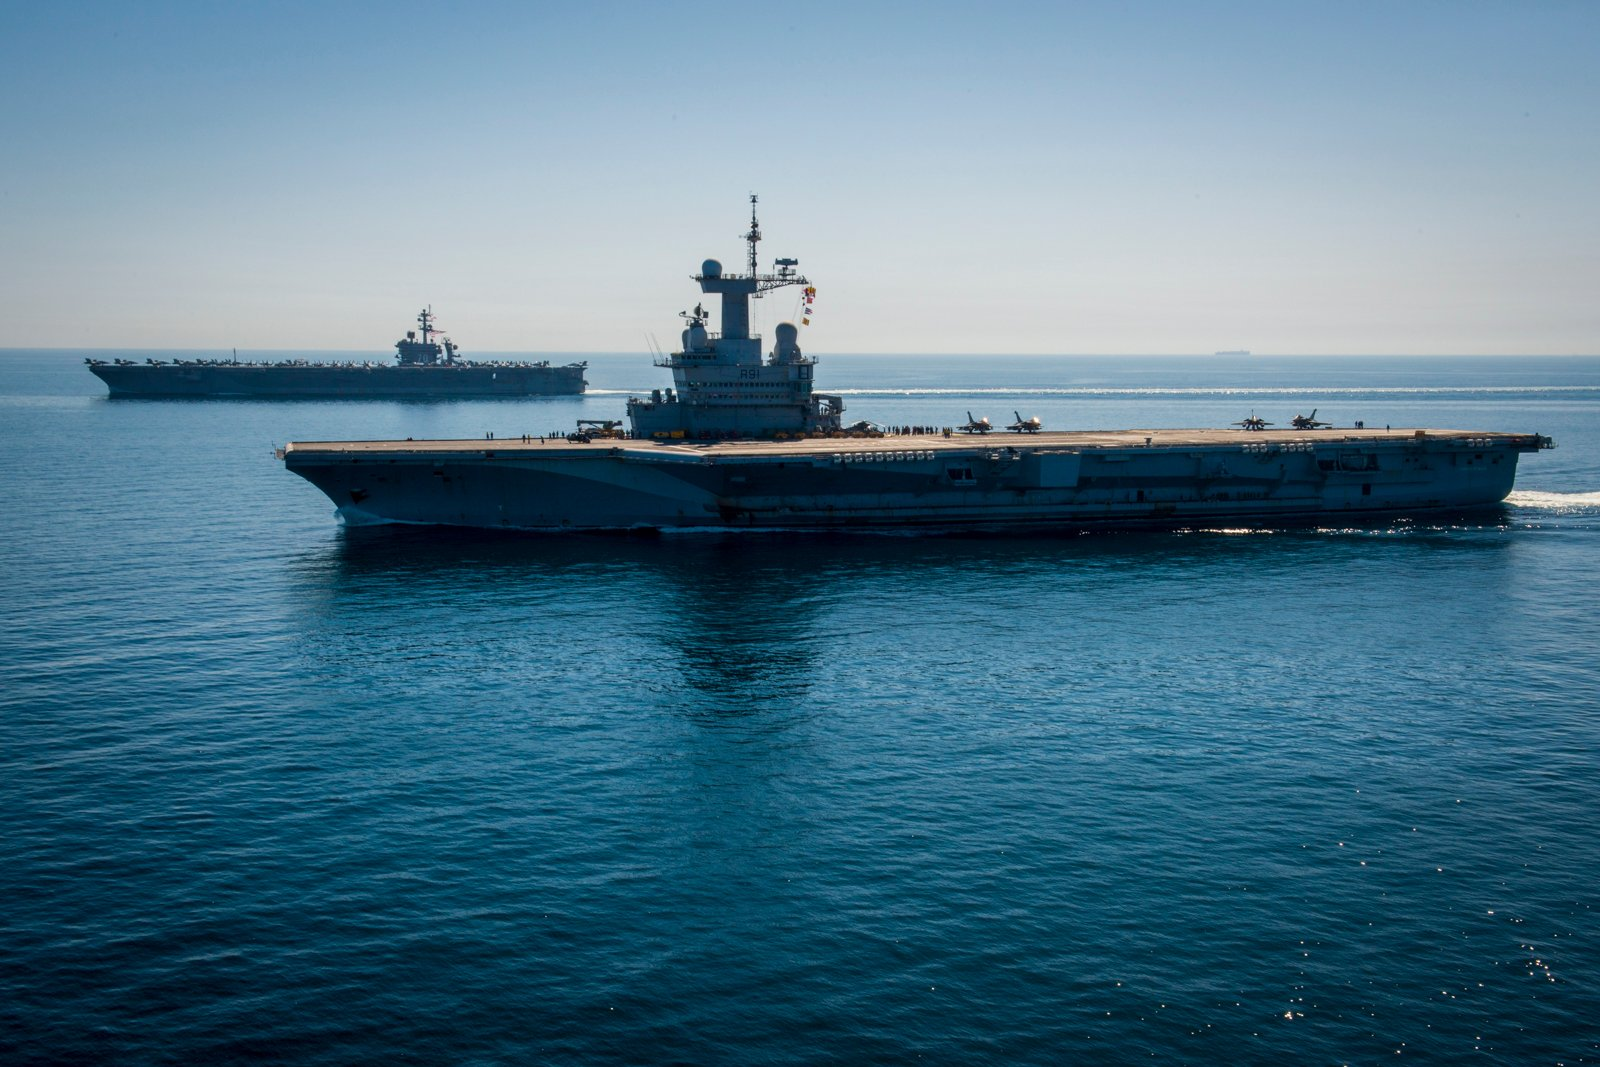 USS Carl Vinson (CVN 70), left, and the French nuclear aircraft carrier Charles de Gaulle (R91) transit the Northern Arabian Gulf on March 8, 2015. US Navy Photo